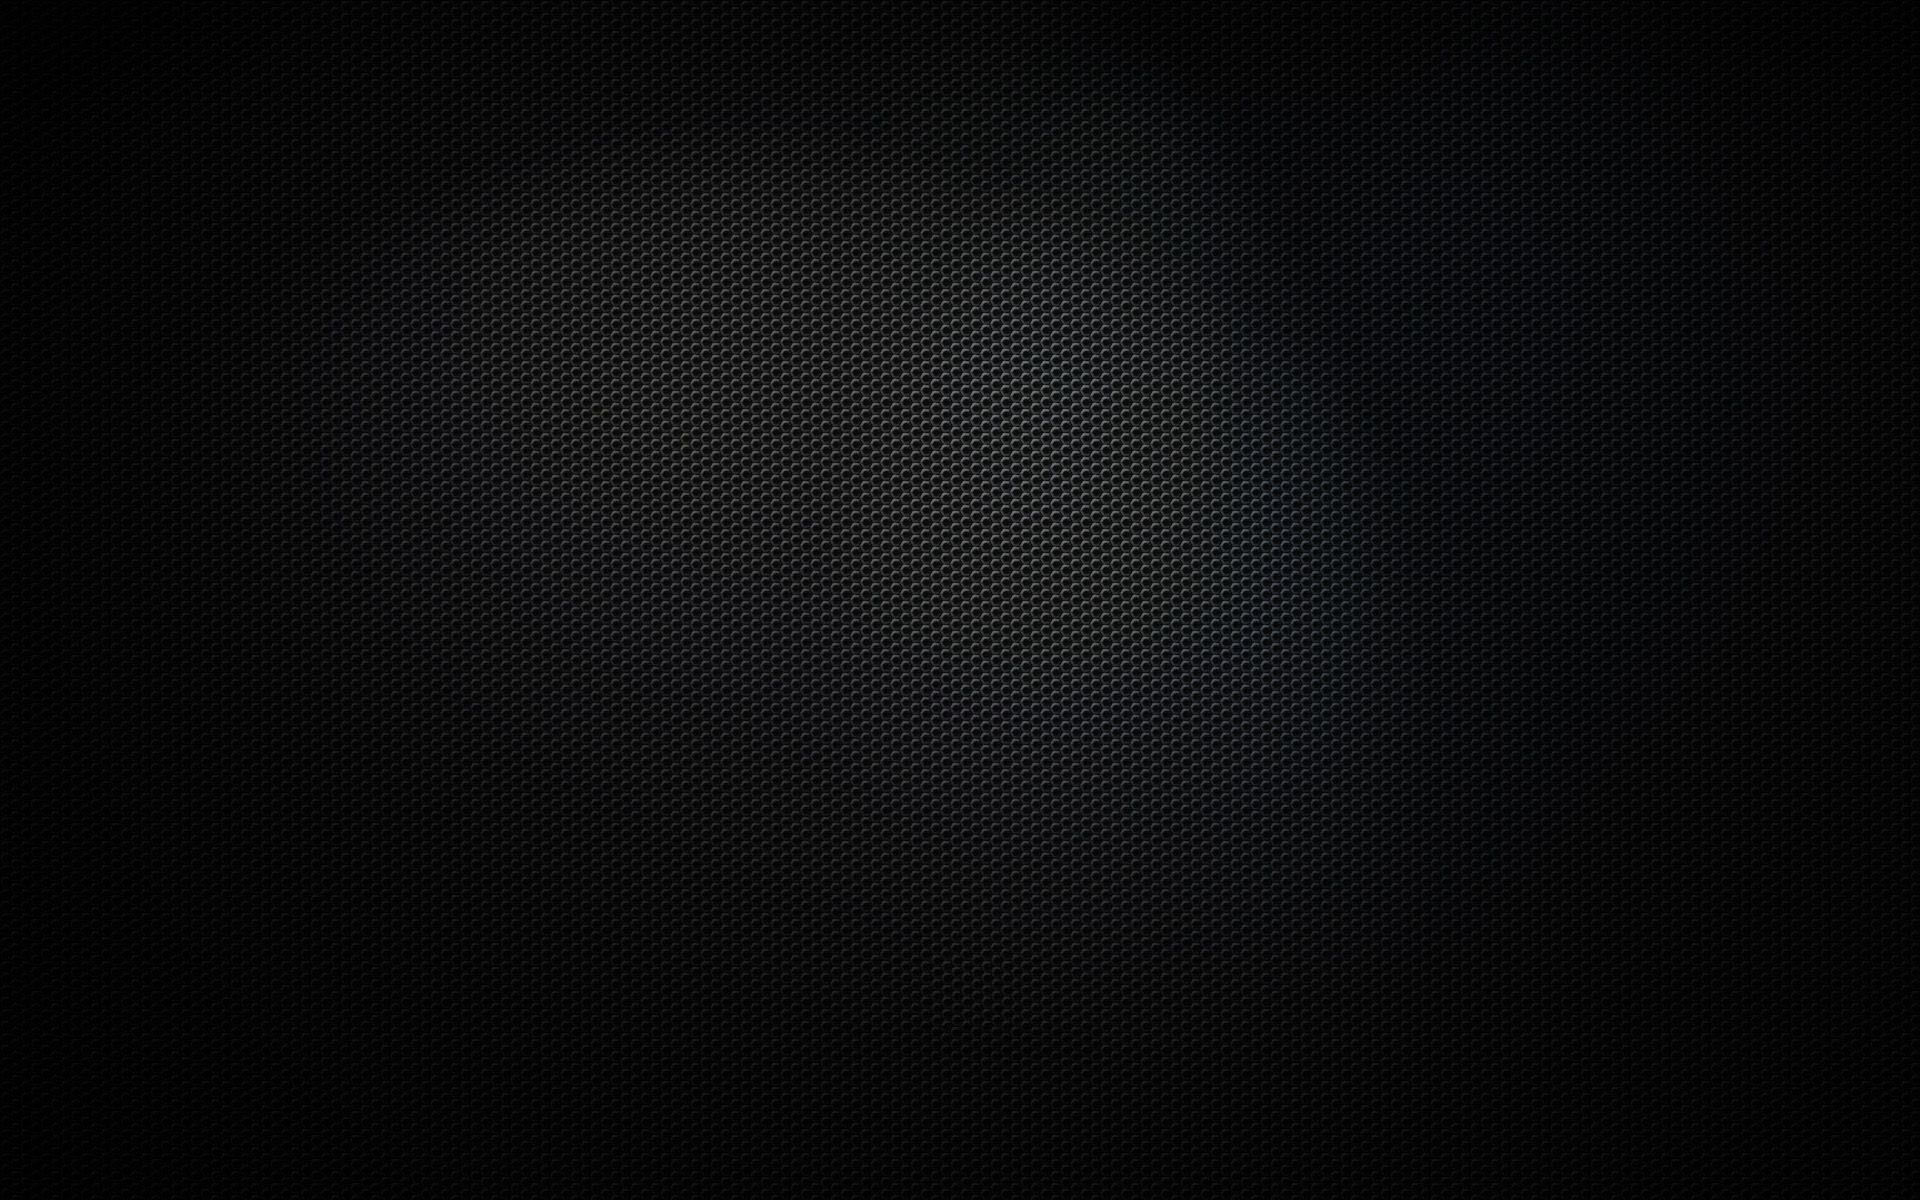 Black Background wallpaper - 764201